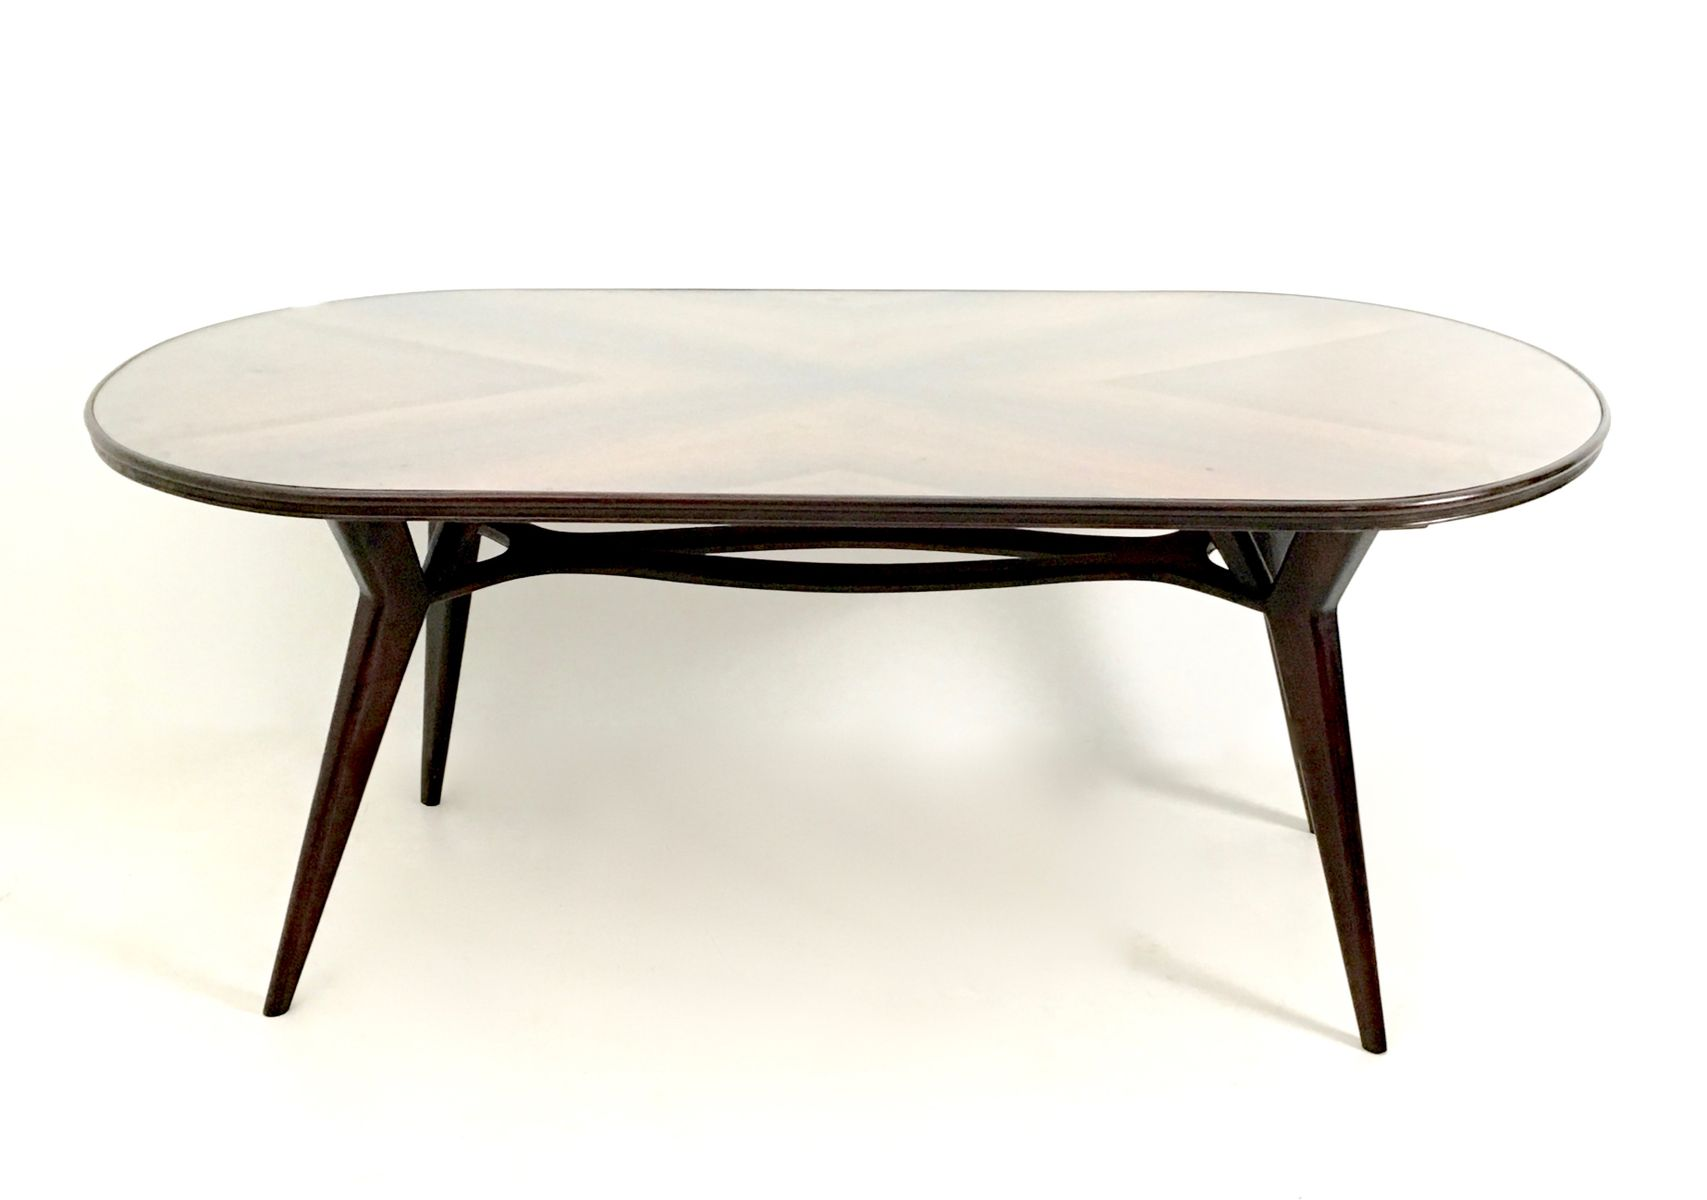 Table de salle a manger moderne en verre for Table originale salle manger